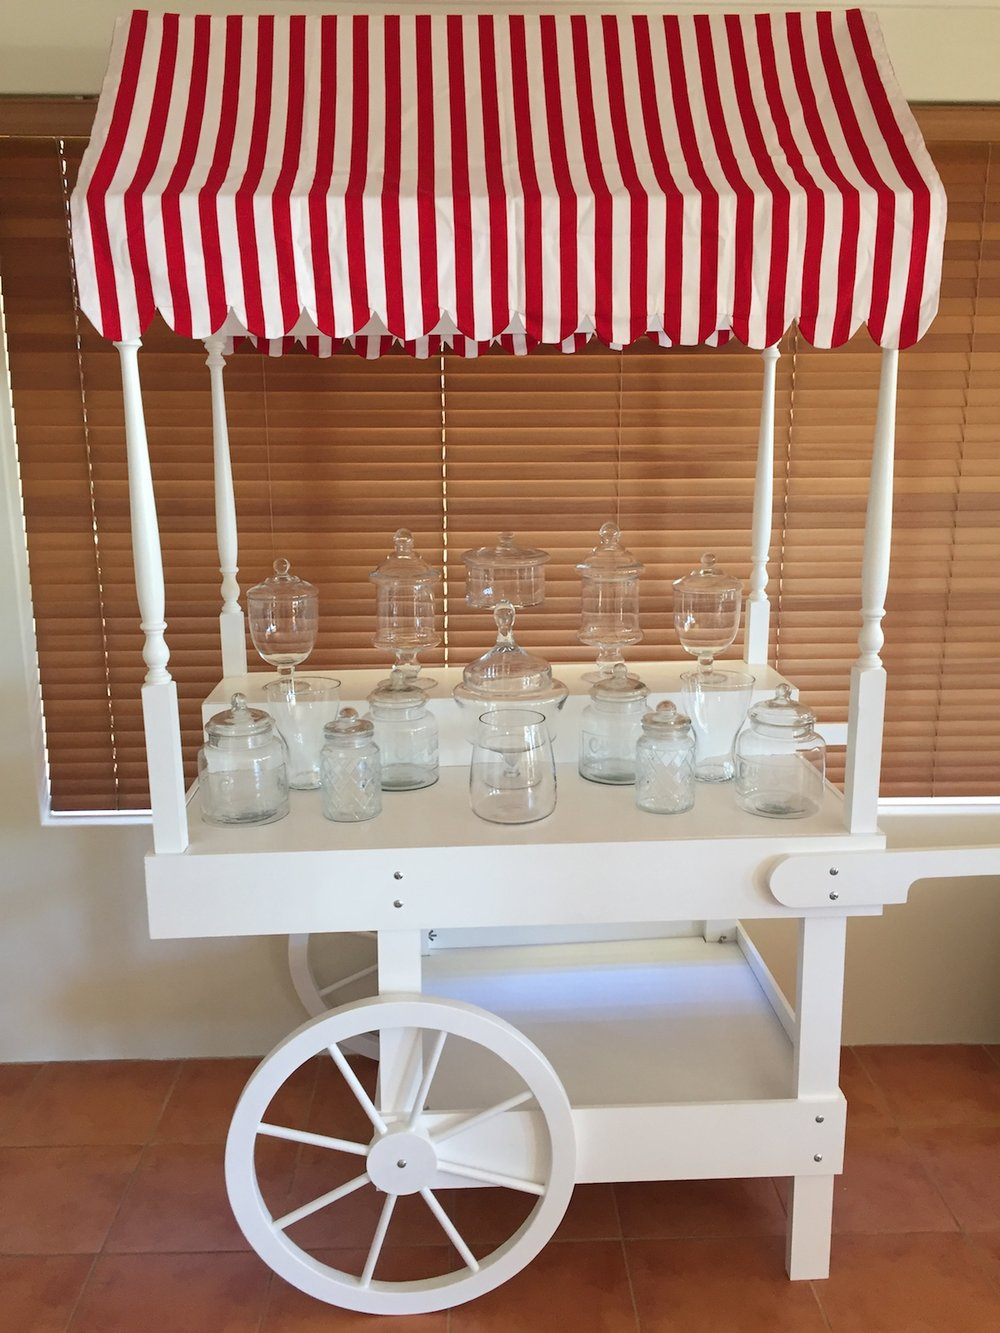 Cart-Only-Hire-Little-Lolly-Cart-15-Jars.JPG